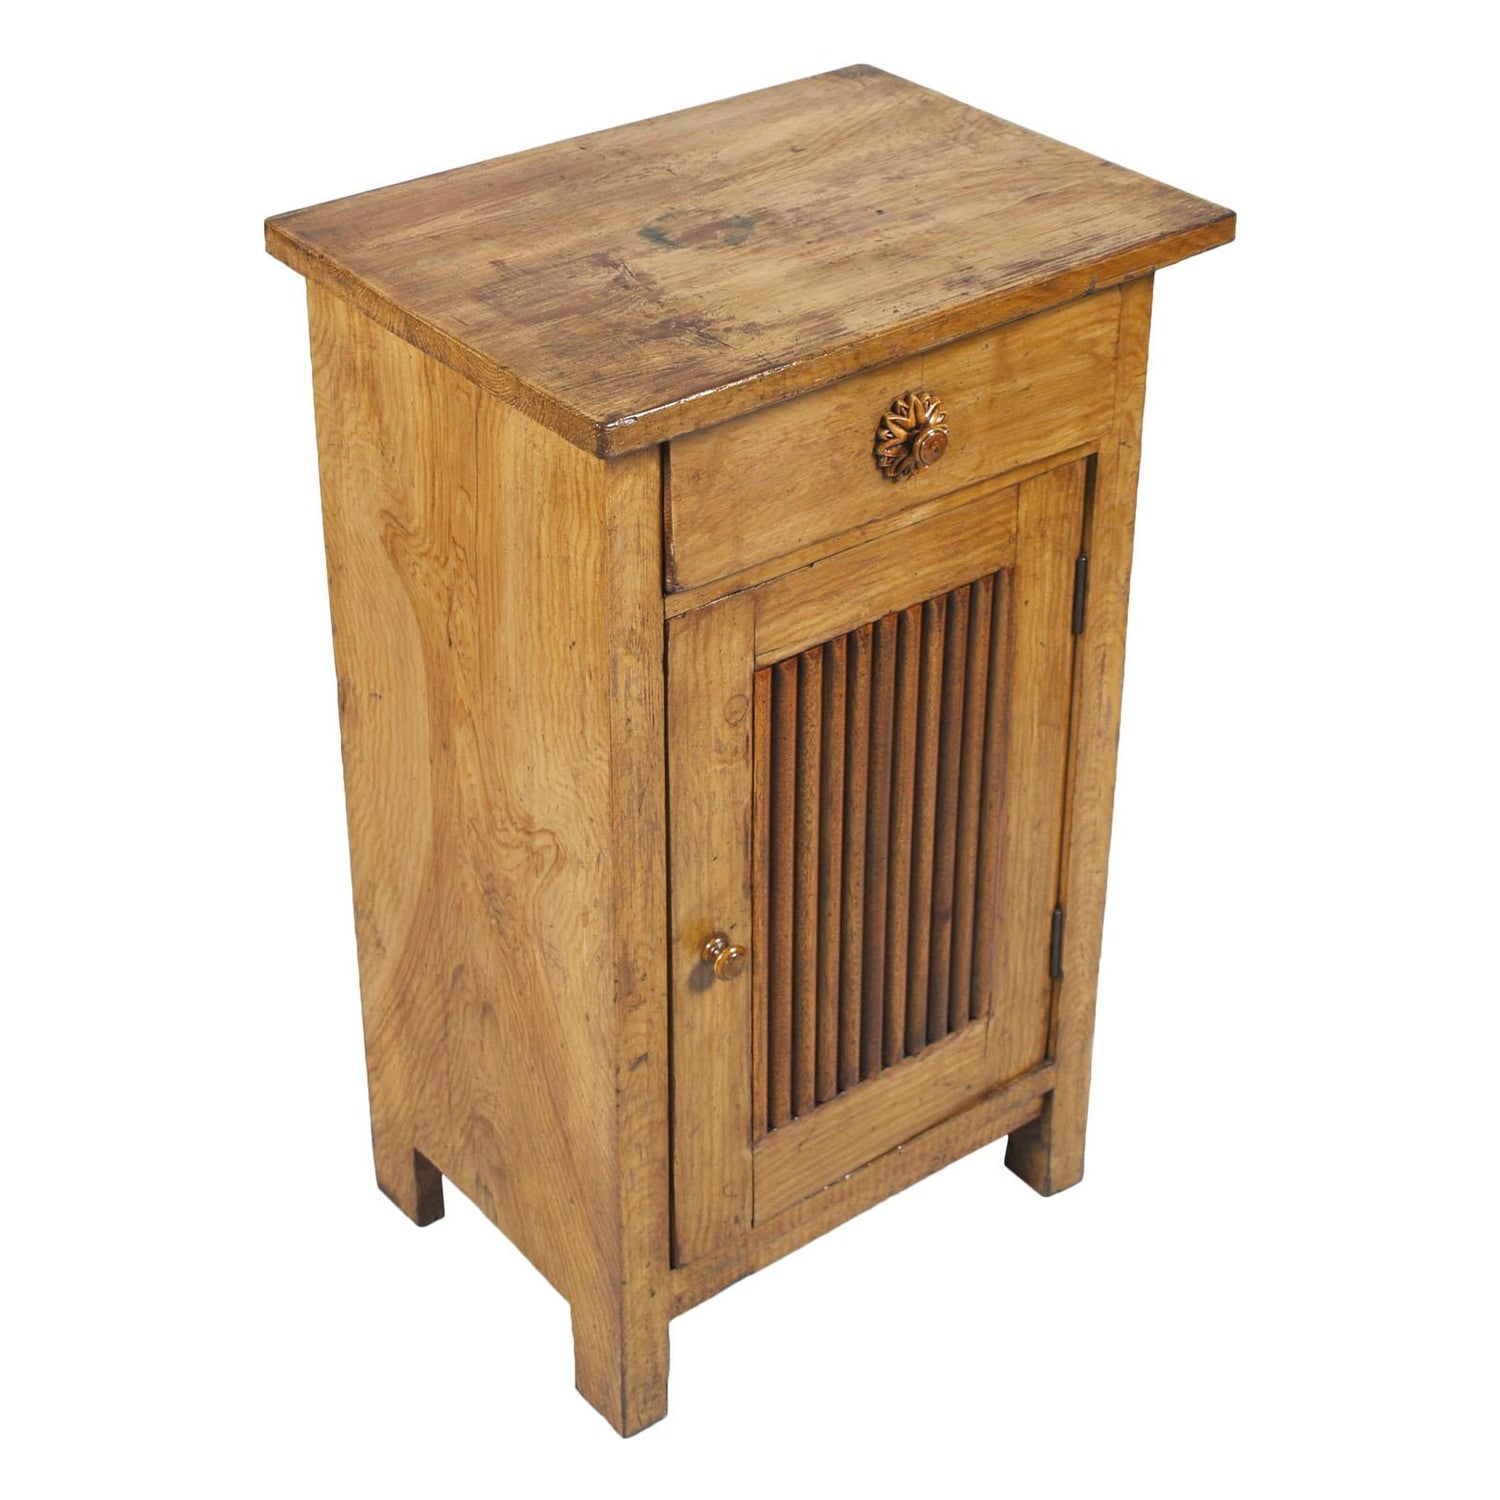 Early 20th Century Art Nouveau Country Nightstand Cabinet Restored  Wax-Polished